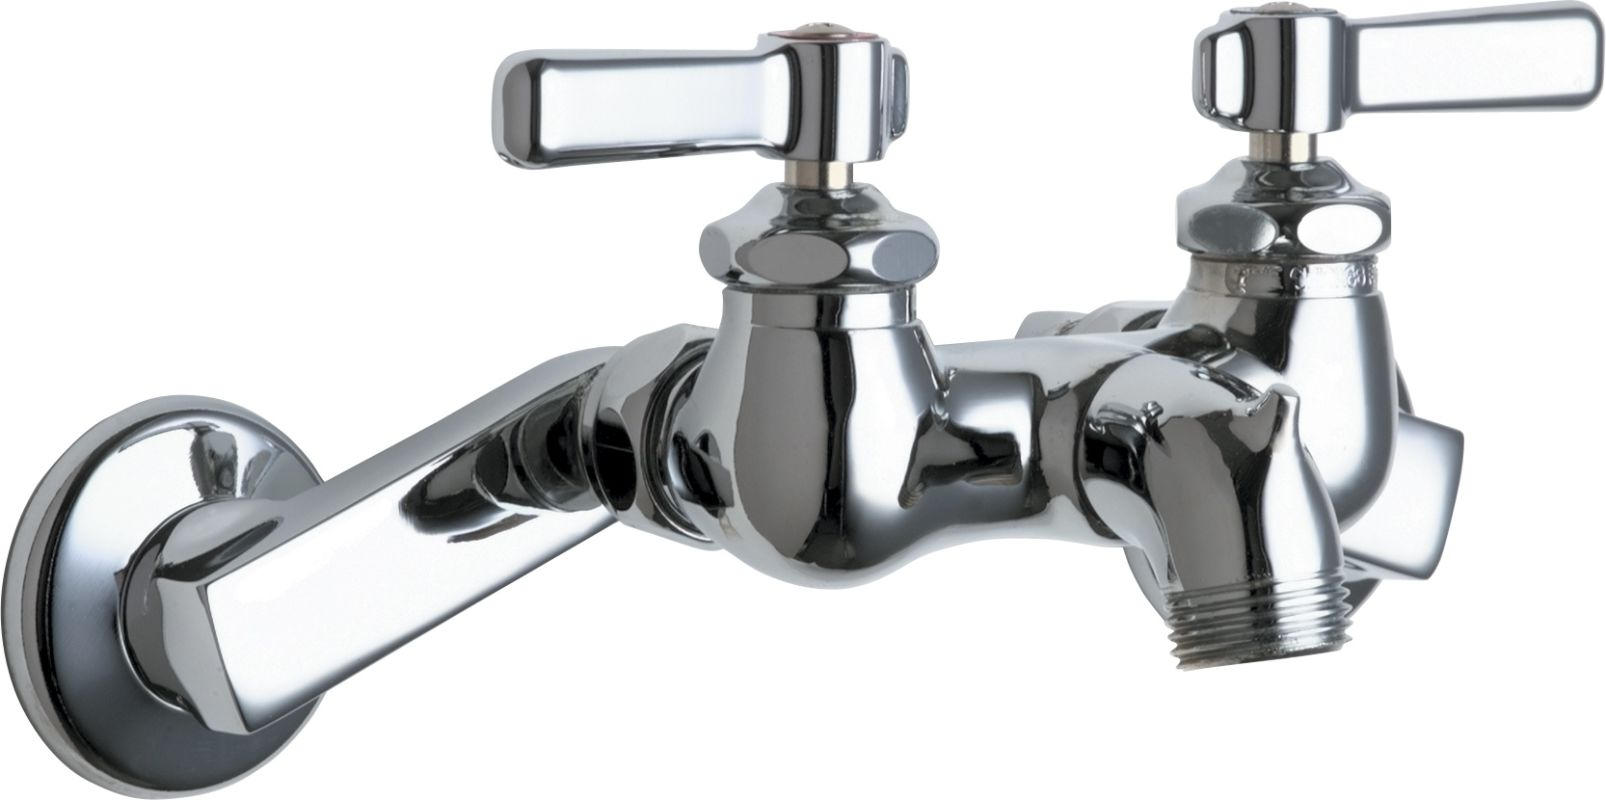 Mop Sink Faucet : Chicago Faucets 305 Wall Mounted Service Sink Faucet with Rigid Spout ...